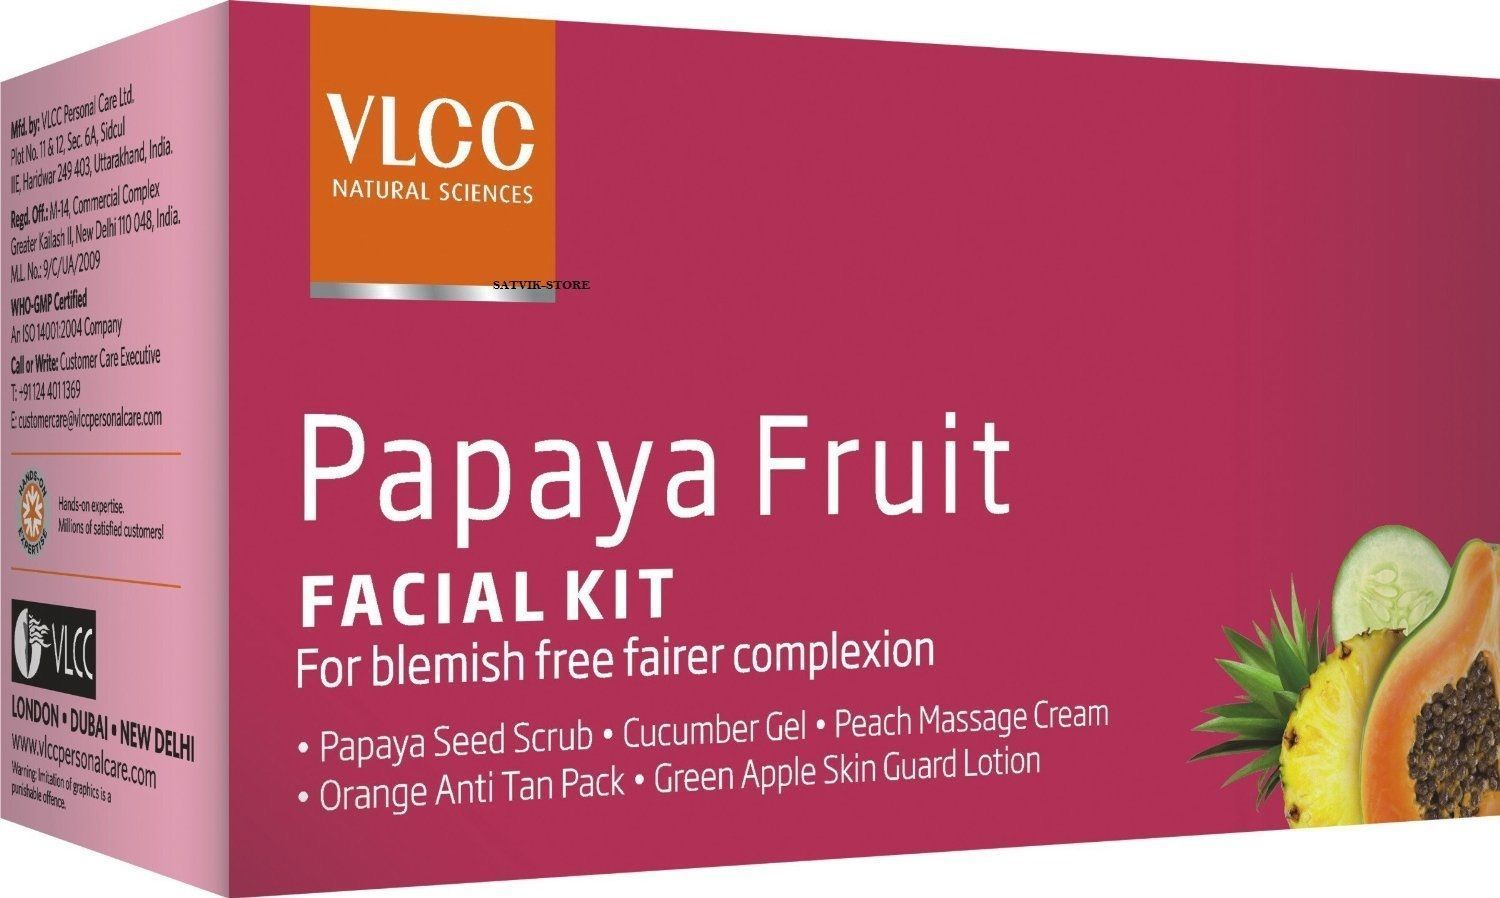 buy VLCC Payaya Fruit Facial Kit in UK & USA